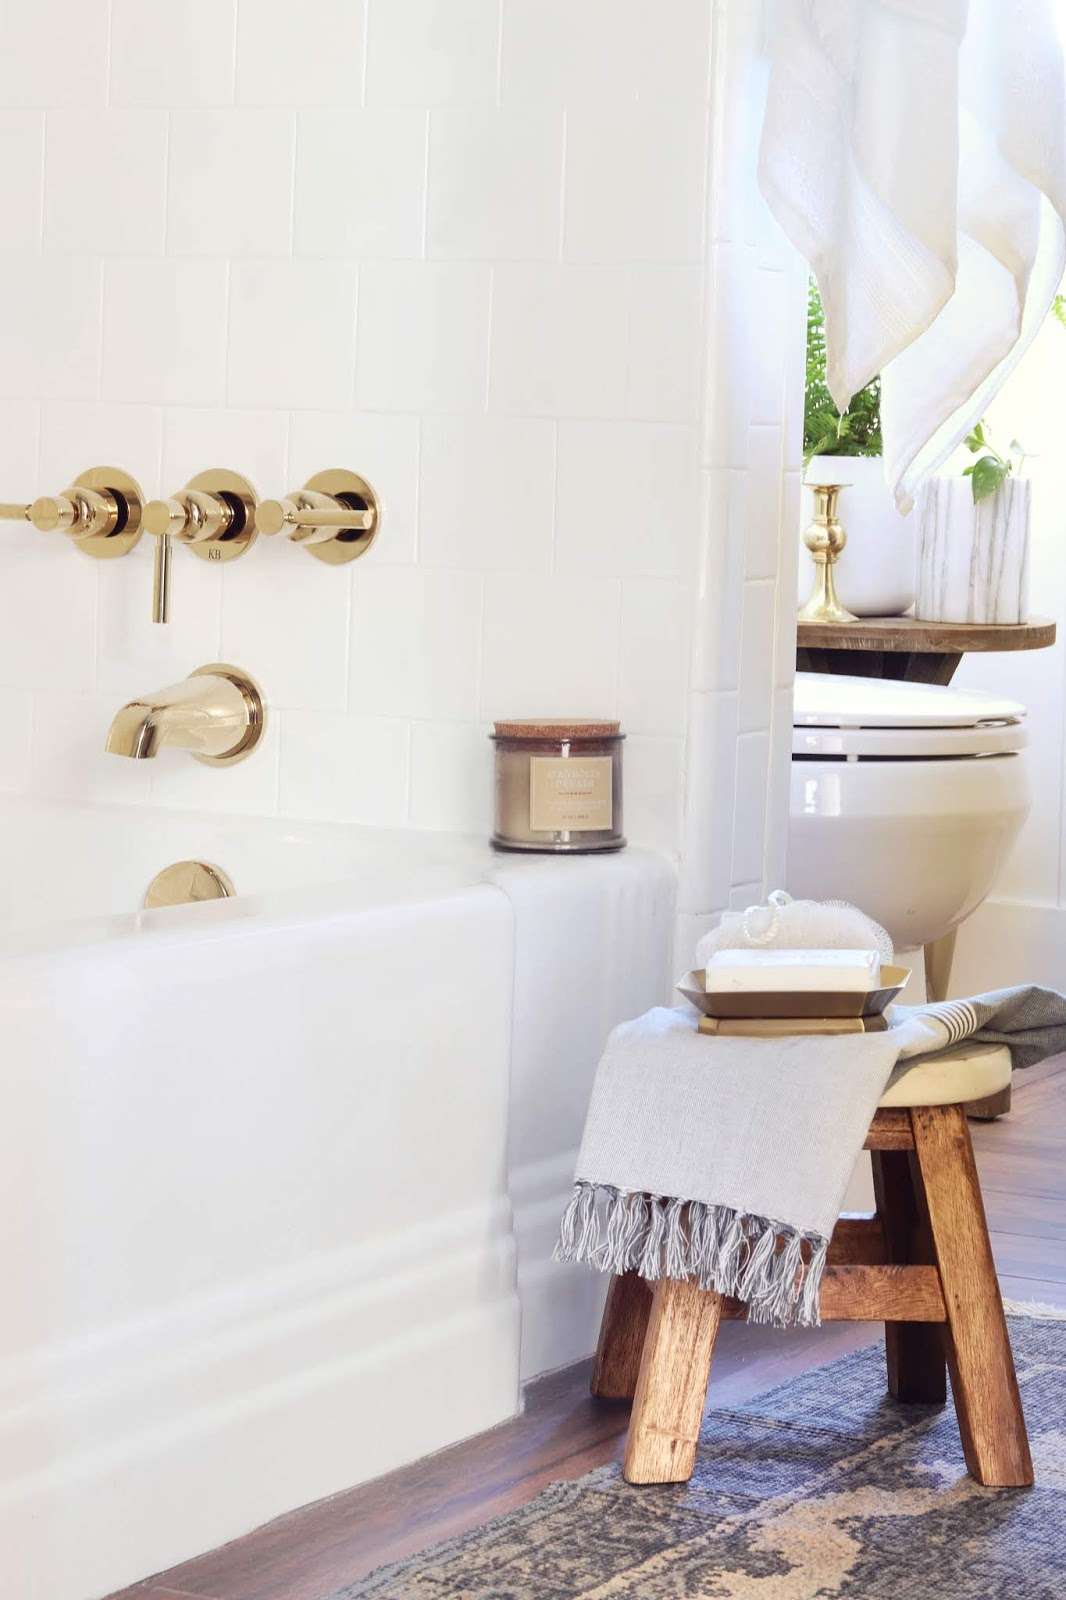 I love the bright spa vibes Carli created in this bathroom.